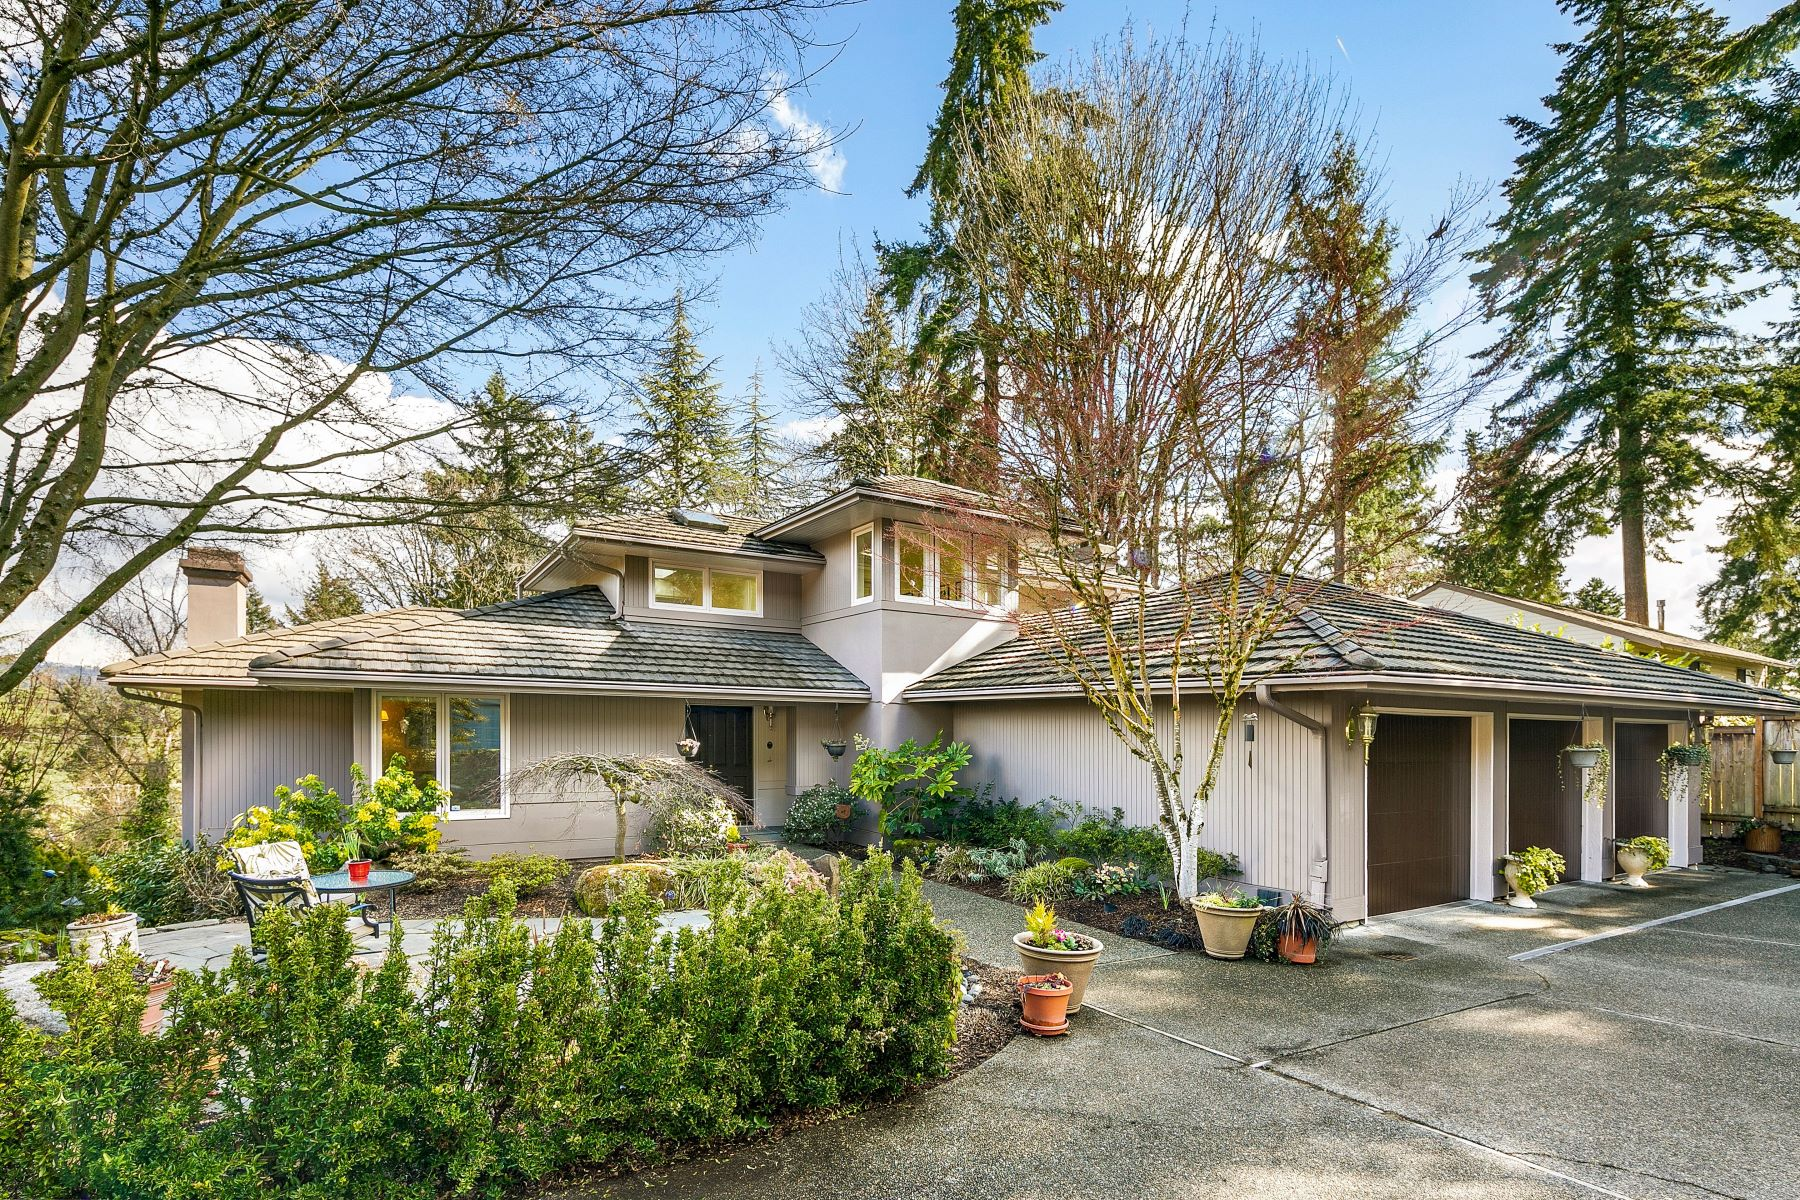 Single Family Homes for Sale at 7066 92nd Ave SE, Mercer Island, WA 98040 Mercer Island, Washington 98040 United States